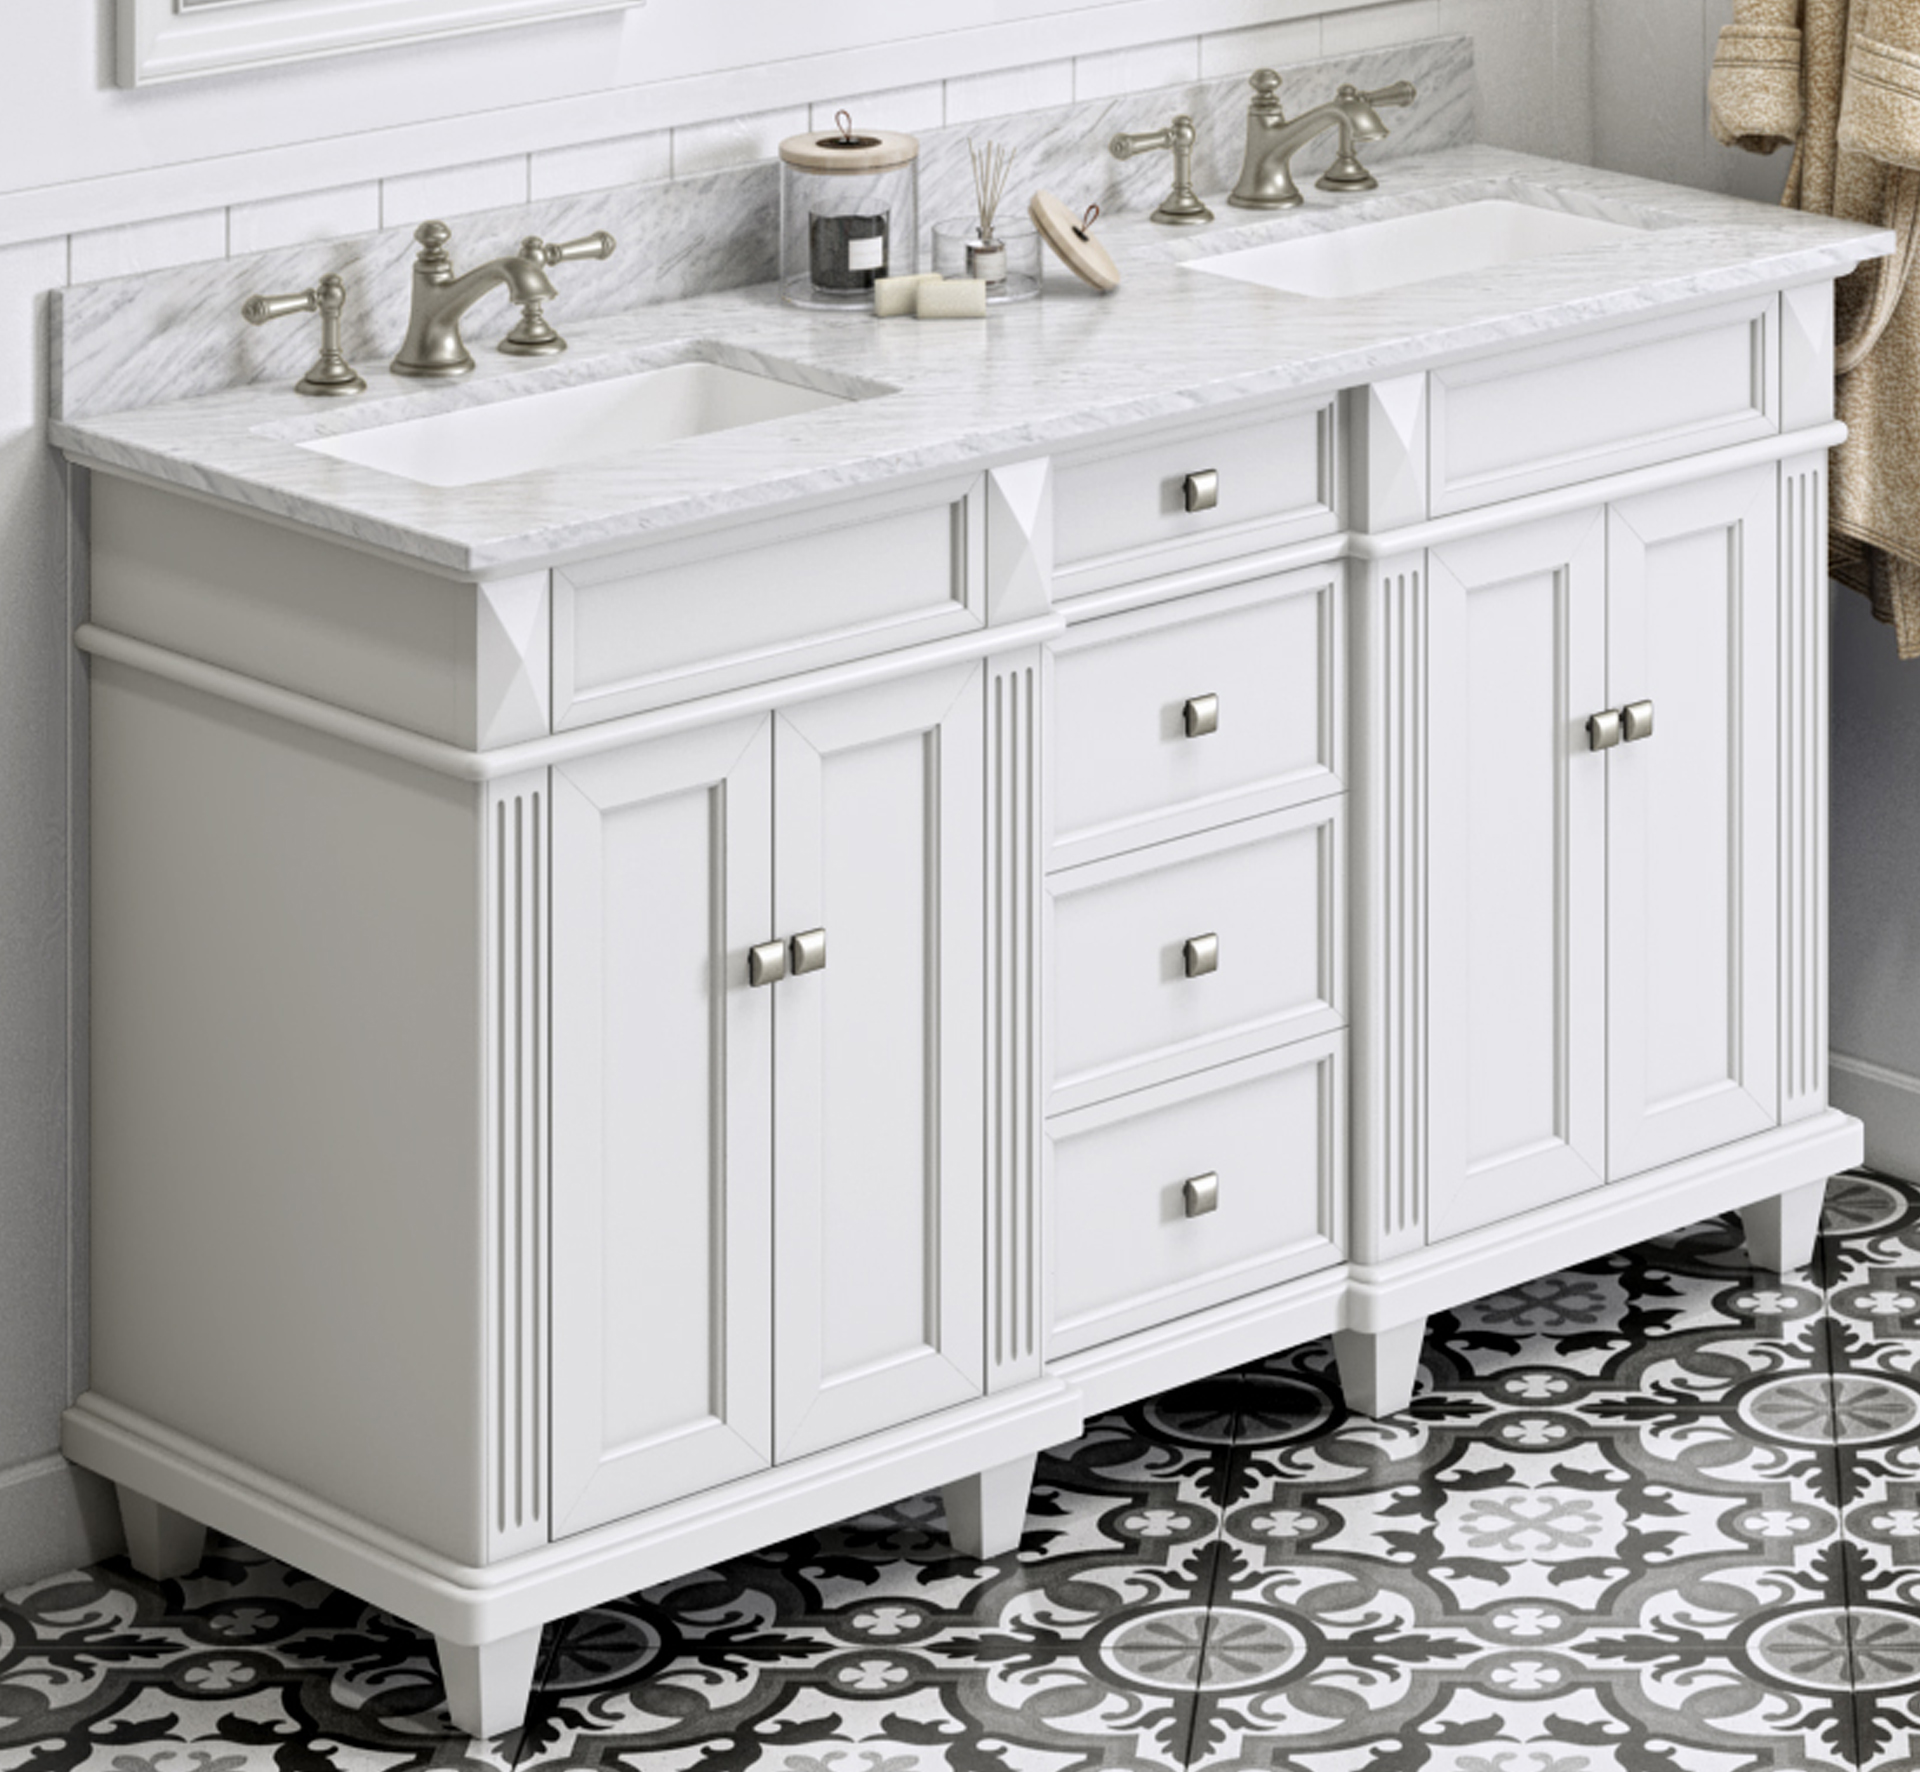 "60"" White Bathroom Vanity Double Bowl White Carrara Marble Vanity Top, Undermount Rectangle Bowl"